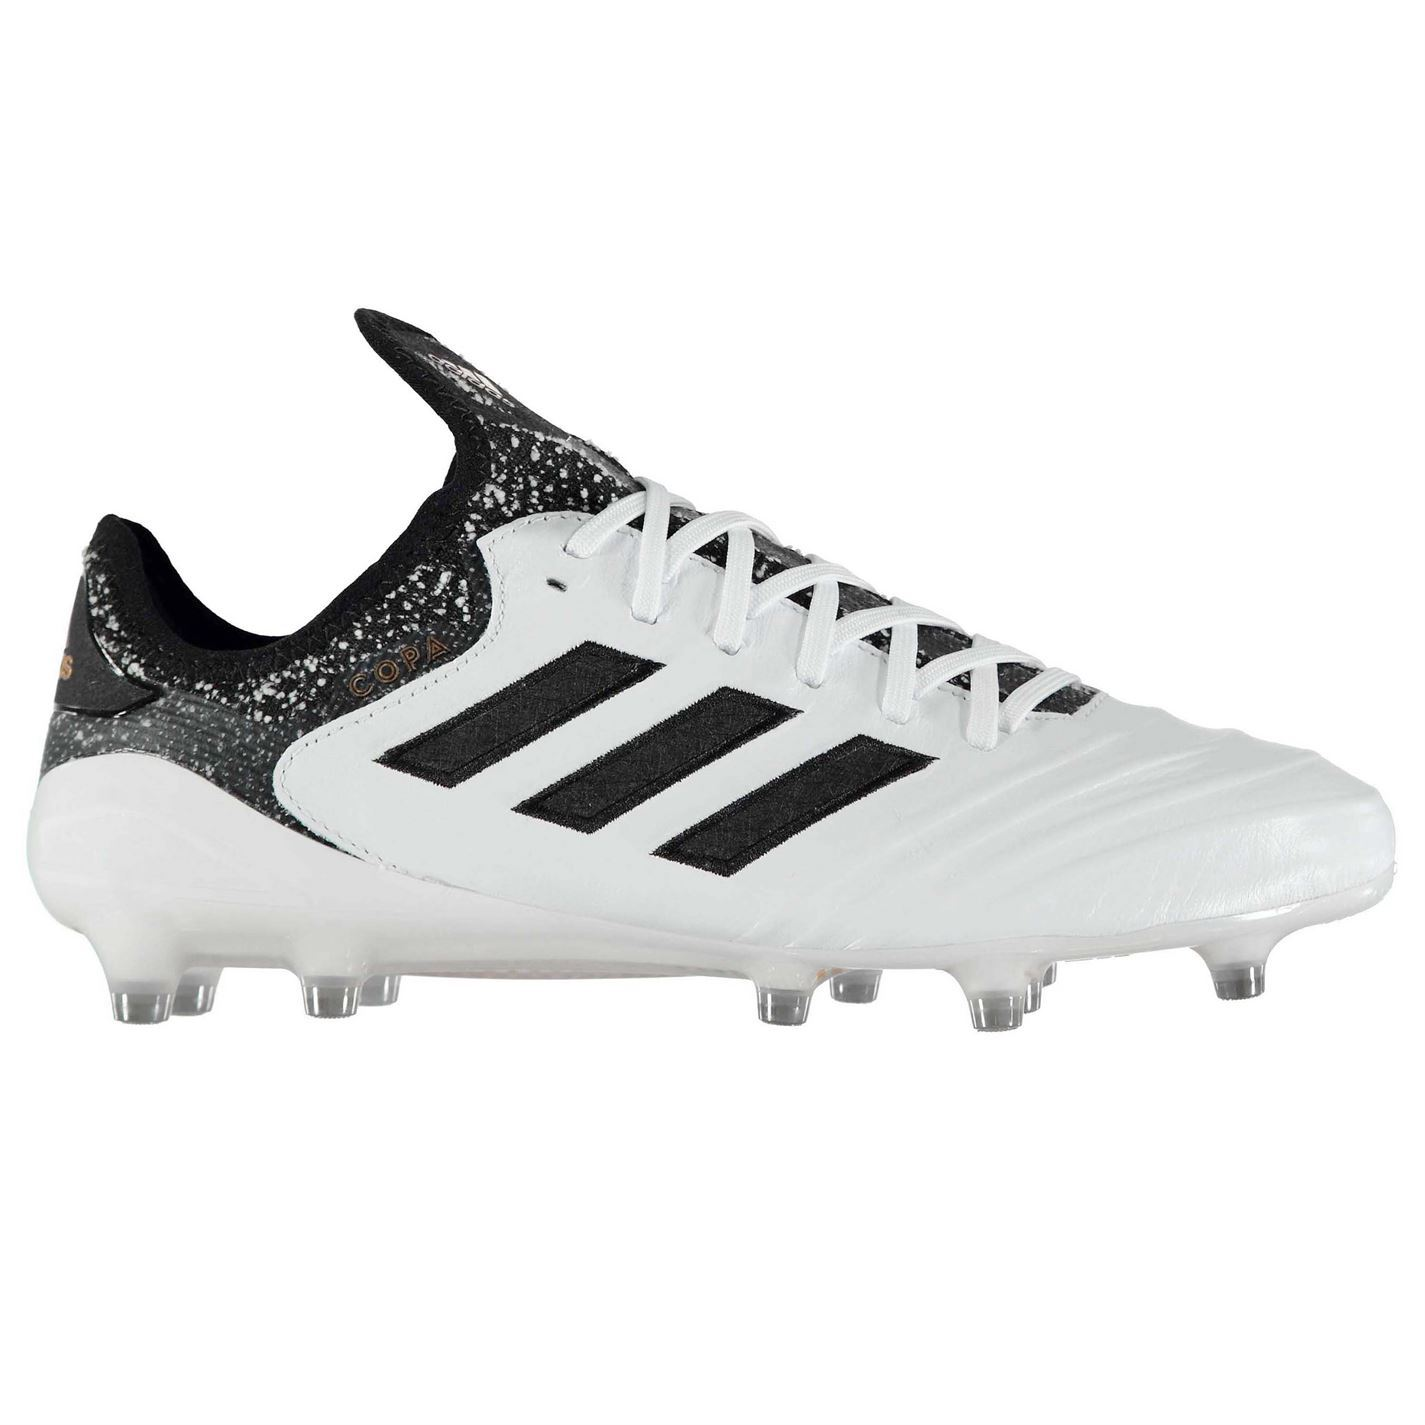 reputable site 21929 85549 adidas Mens Copa 18.1 FG Football Boots Firm Ground Lace Up Padded Ankle  Collar